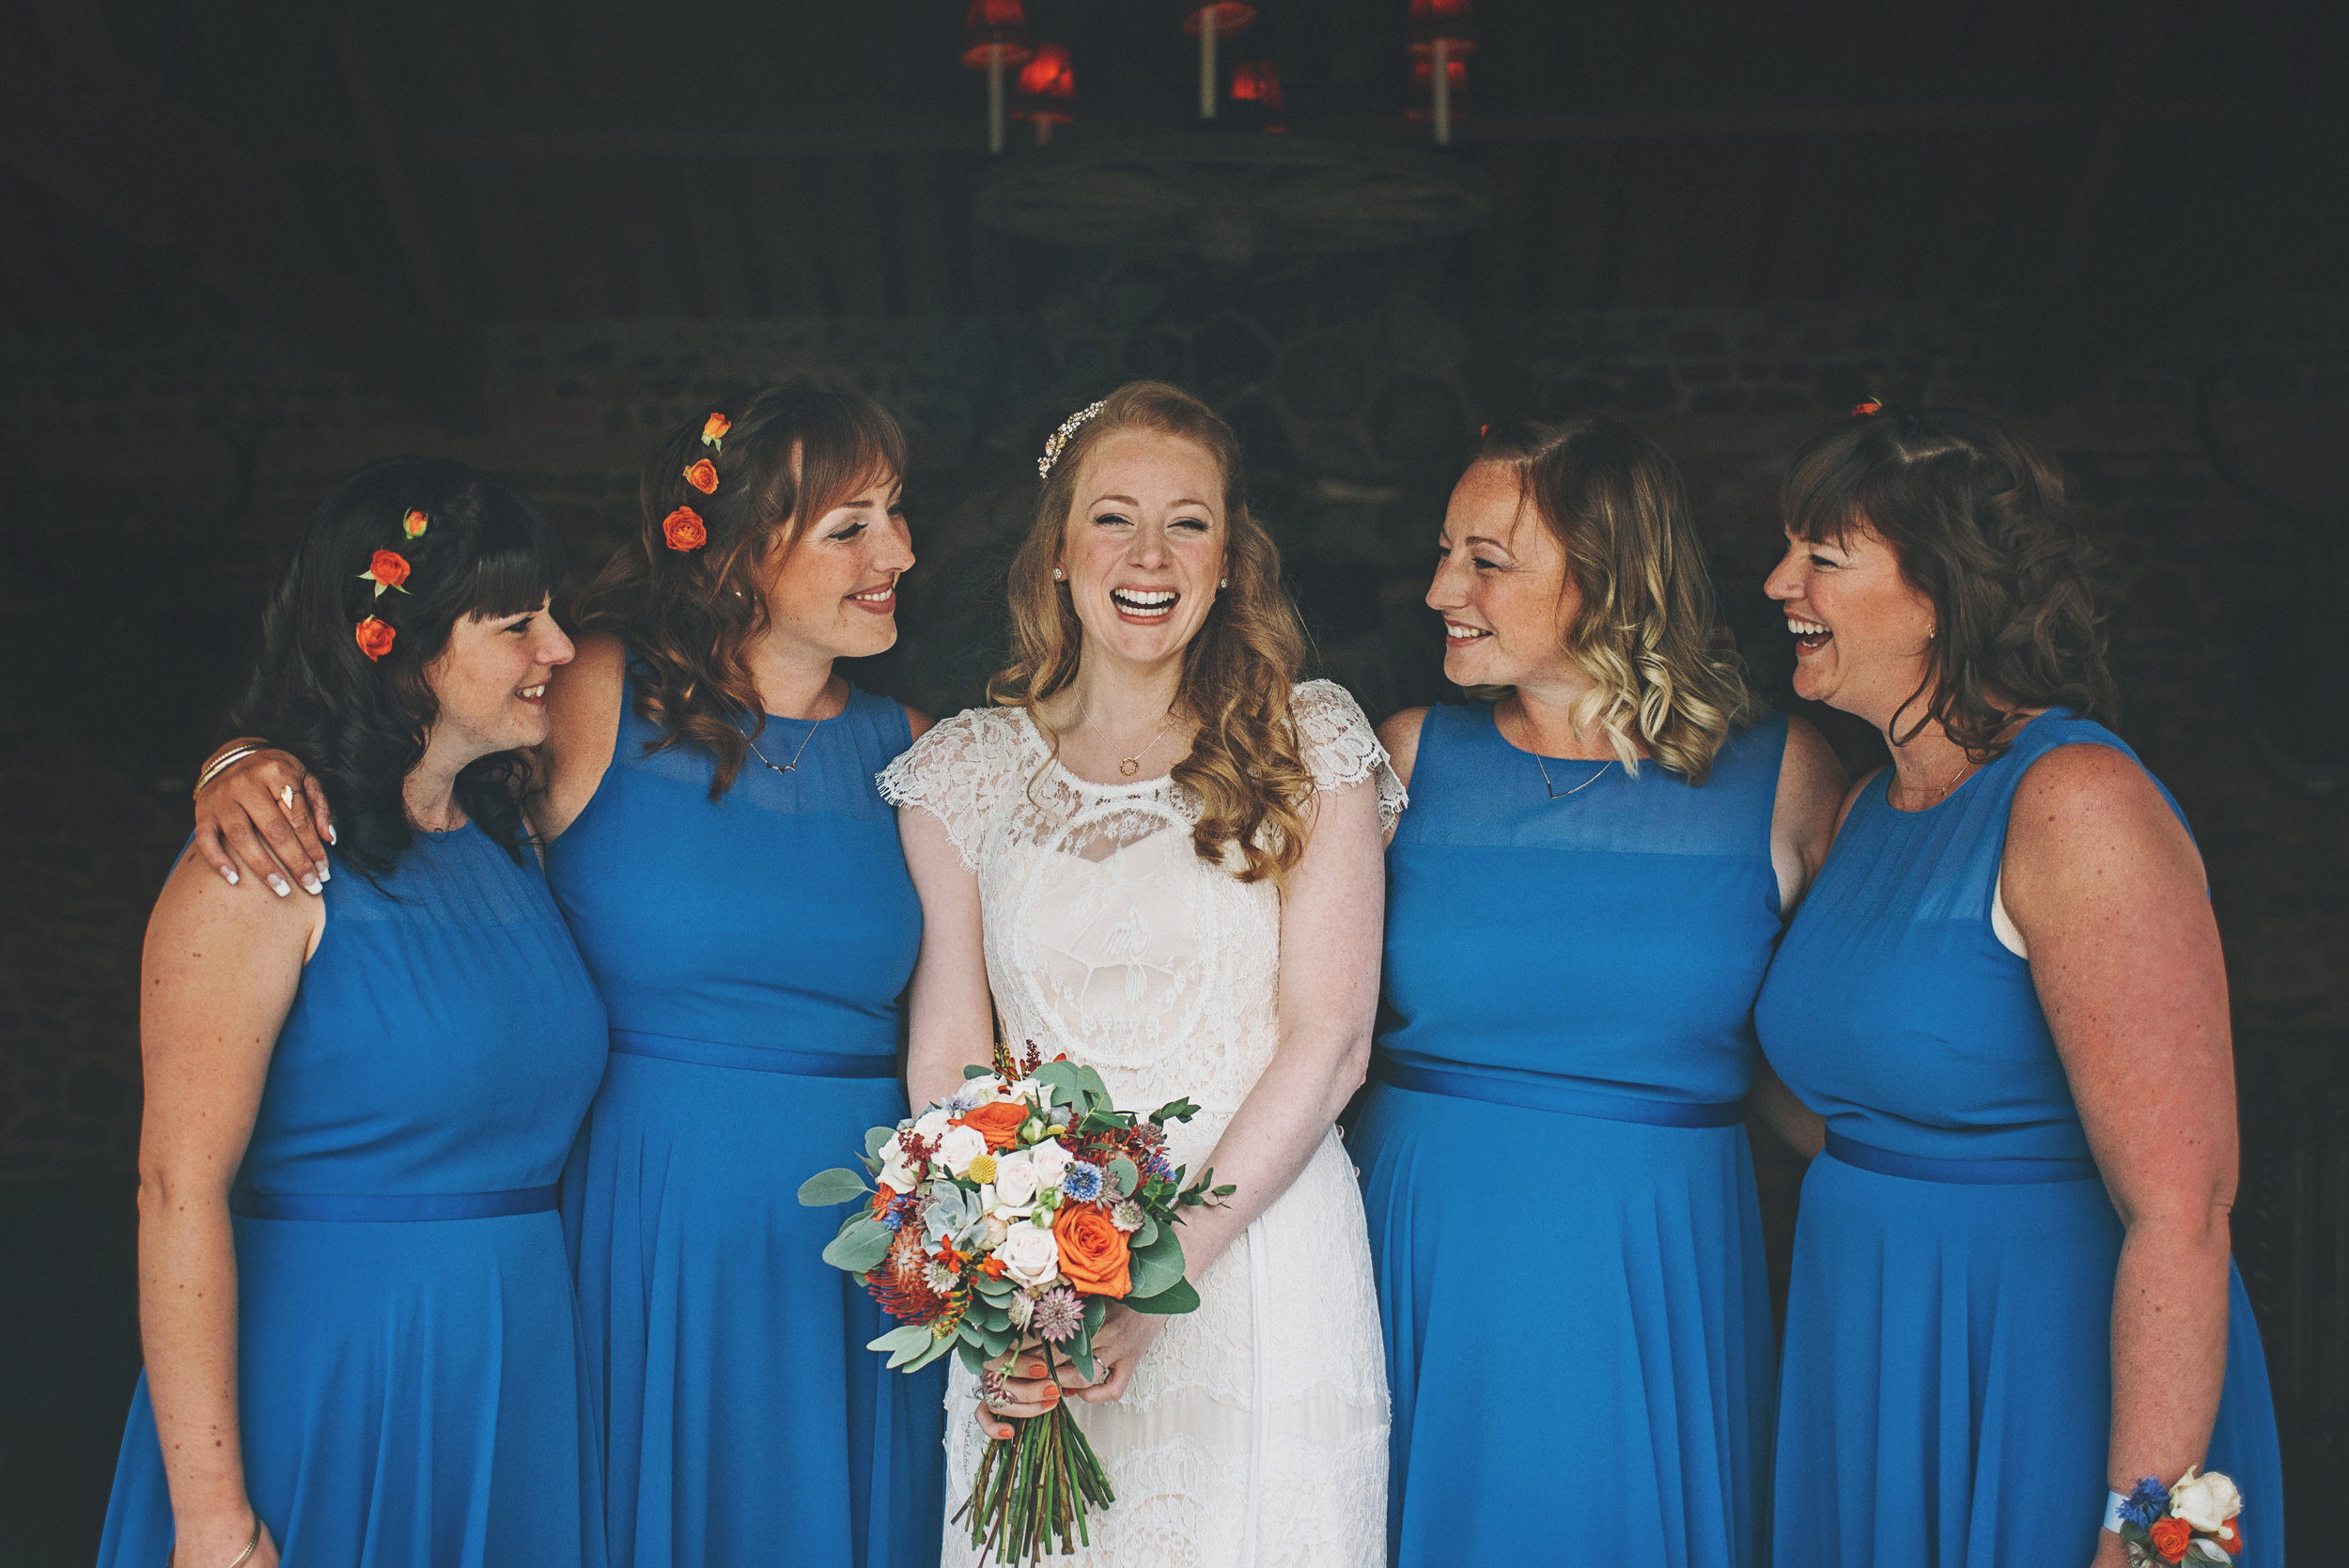 Bride and Bridesmaids in Blue Mexican Theme Cliff Barns Norfolk Essex UK Documentary Wedding Photographer